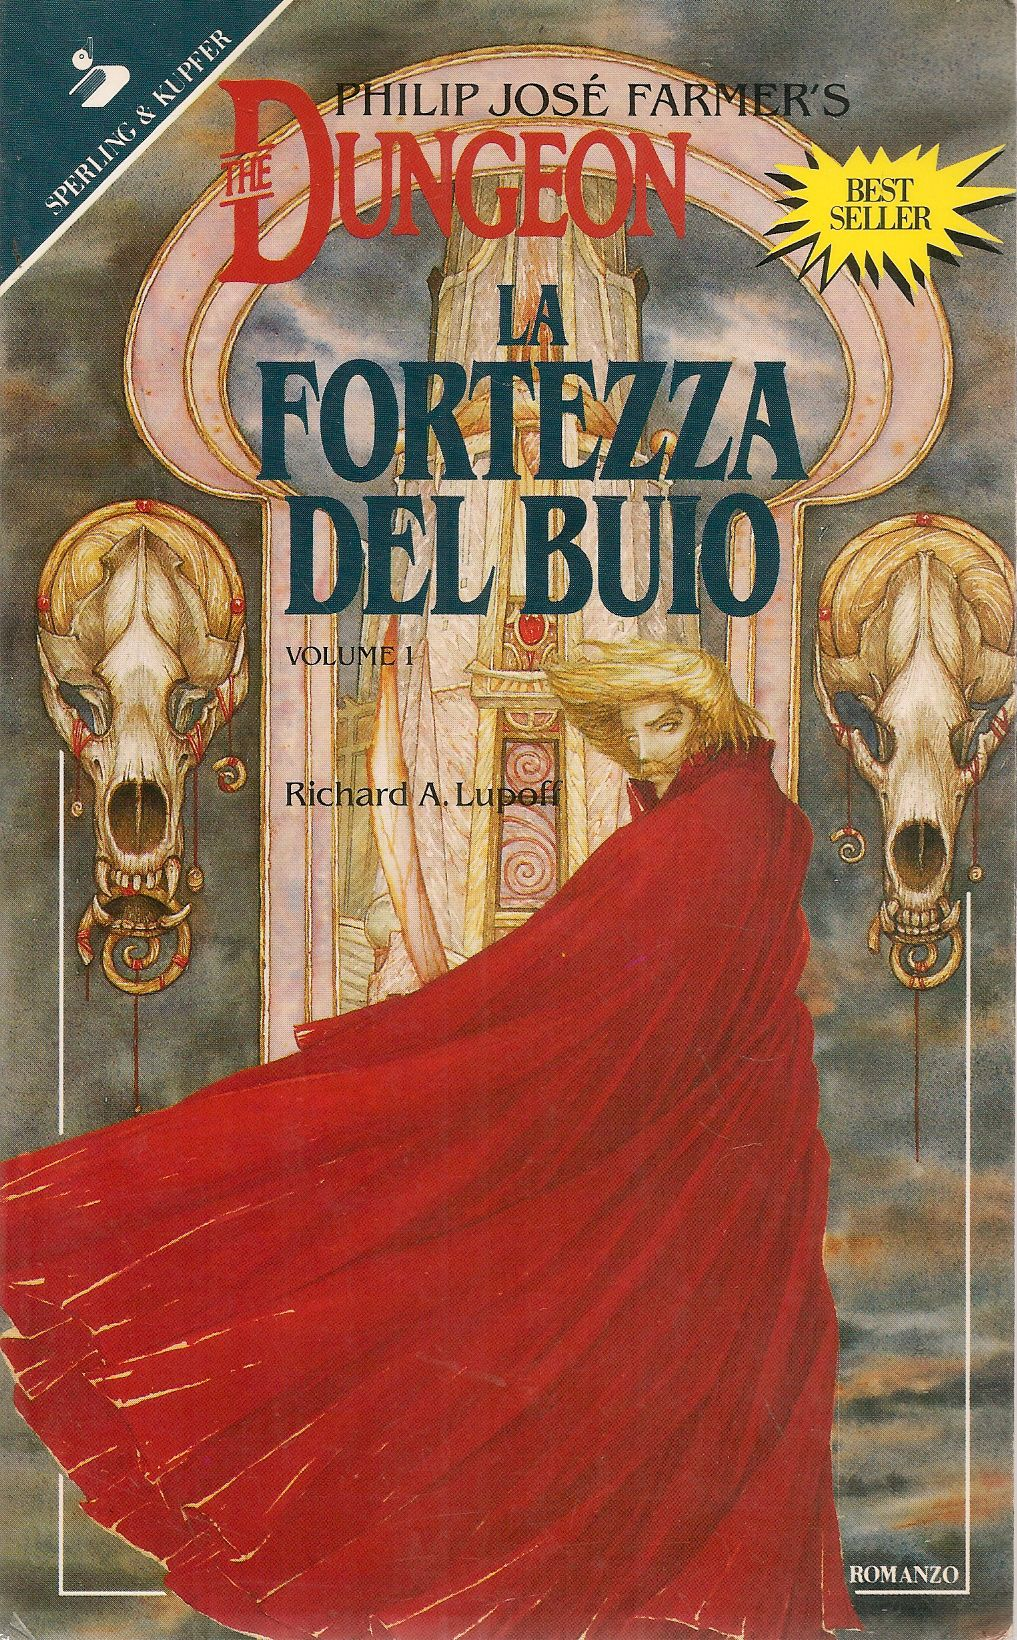 PHILIP JOSE' FARMER'S DUNGEON. LA FORTEZZA DEL BUIO - RICHARD A. LUPOFF